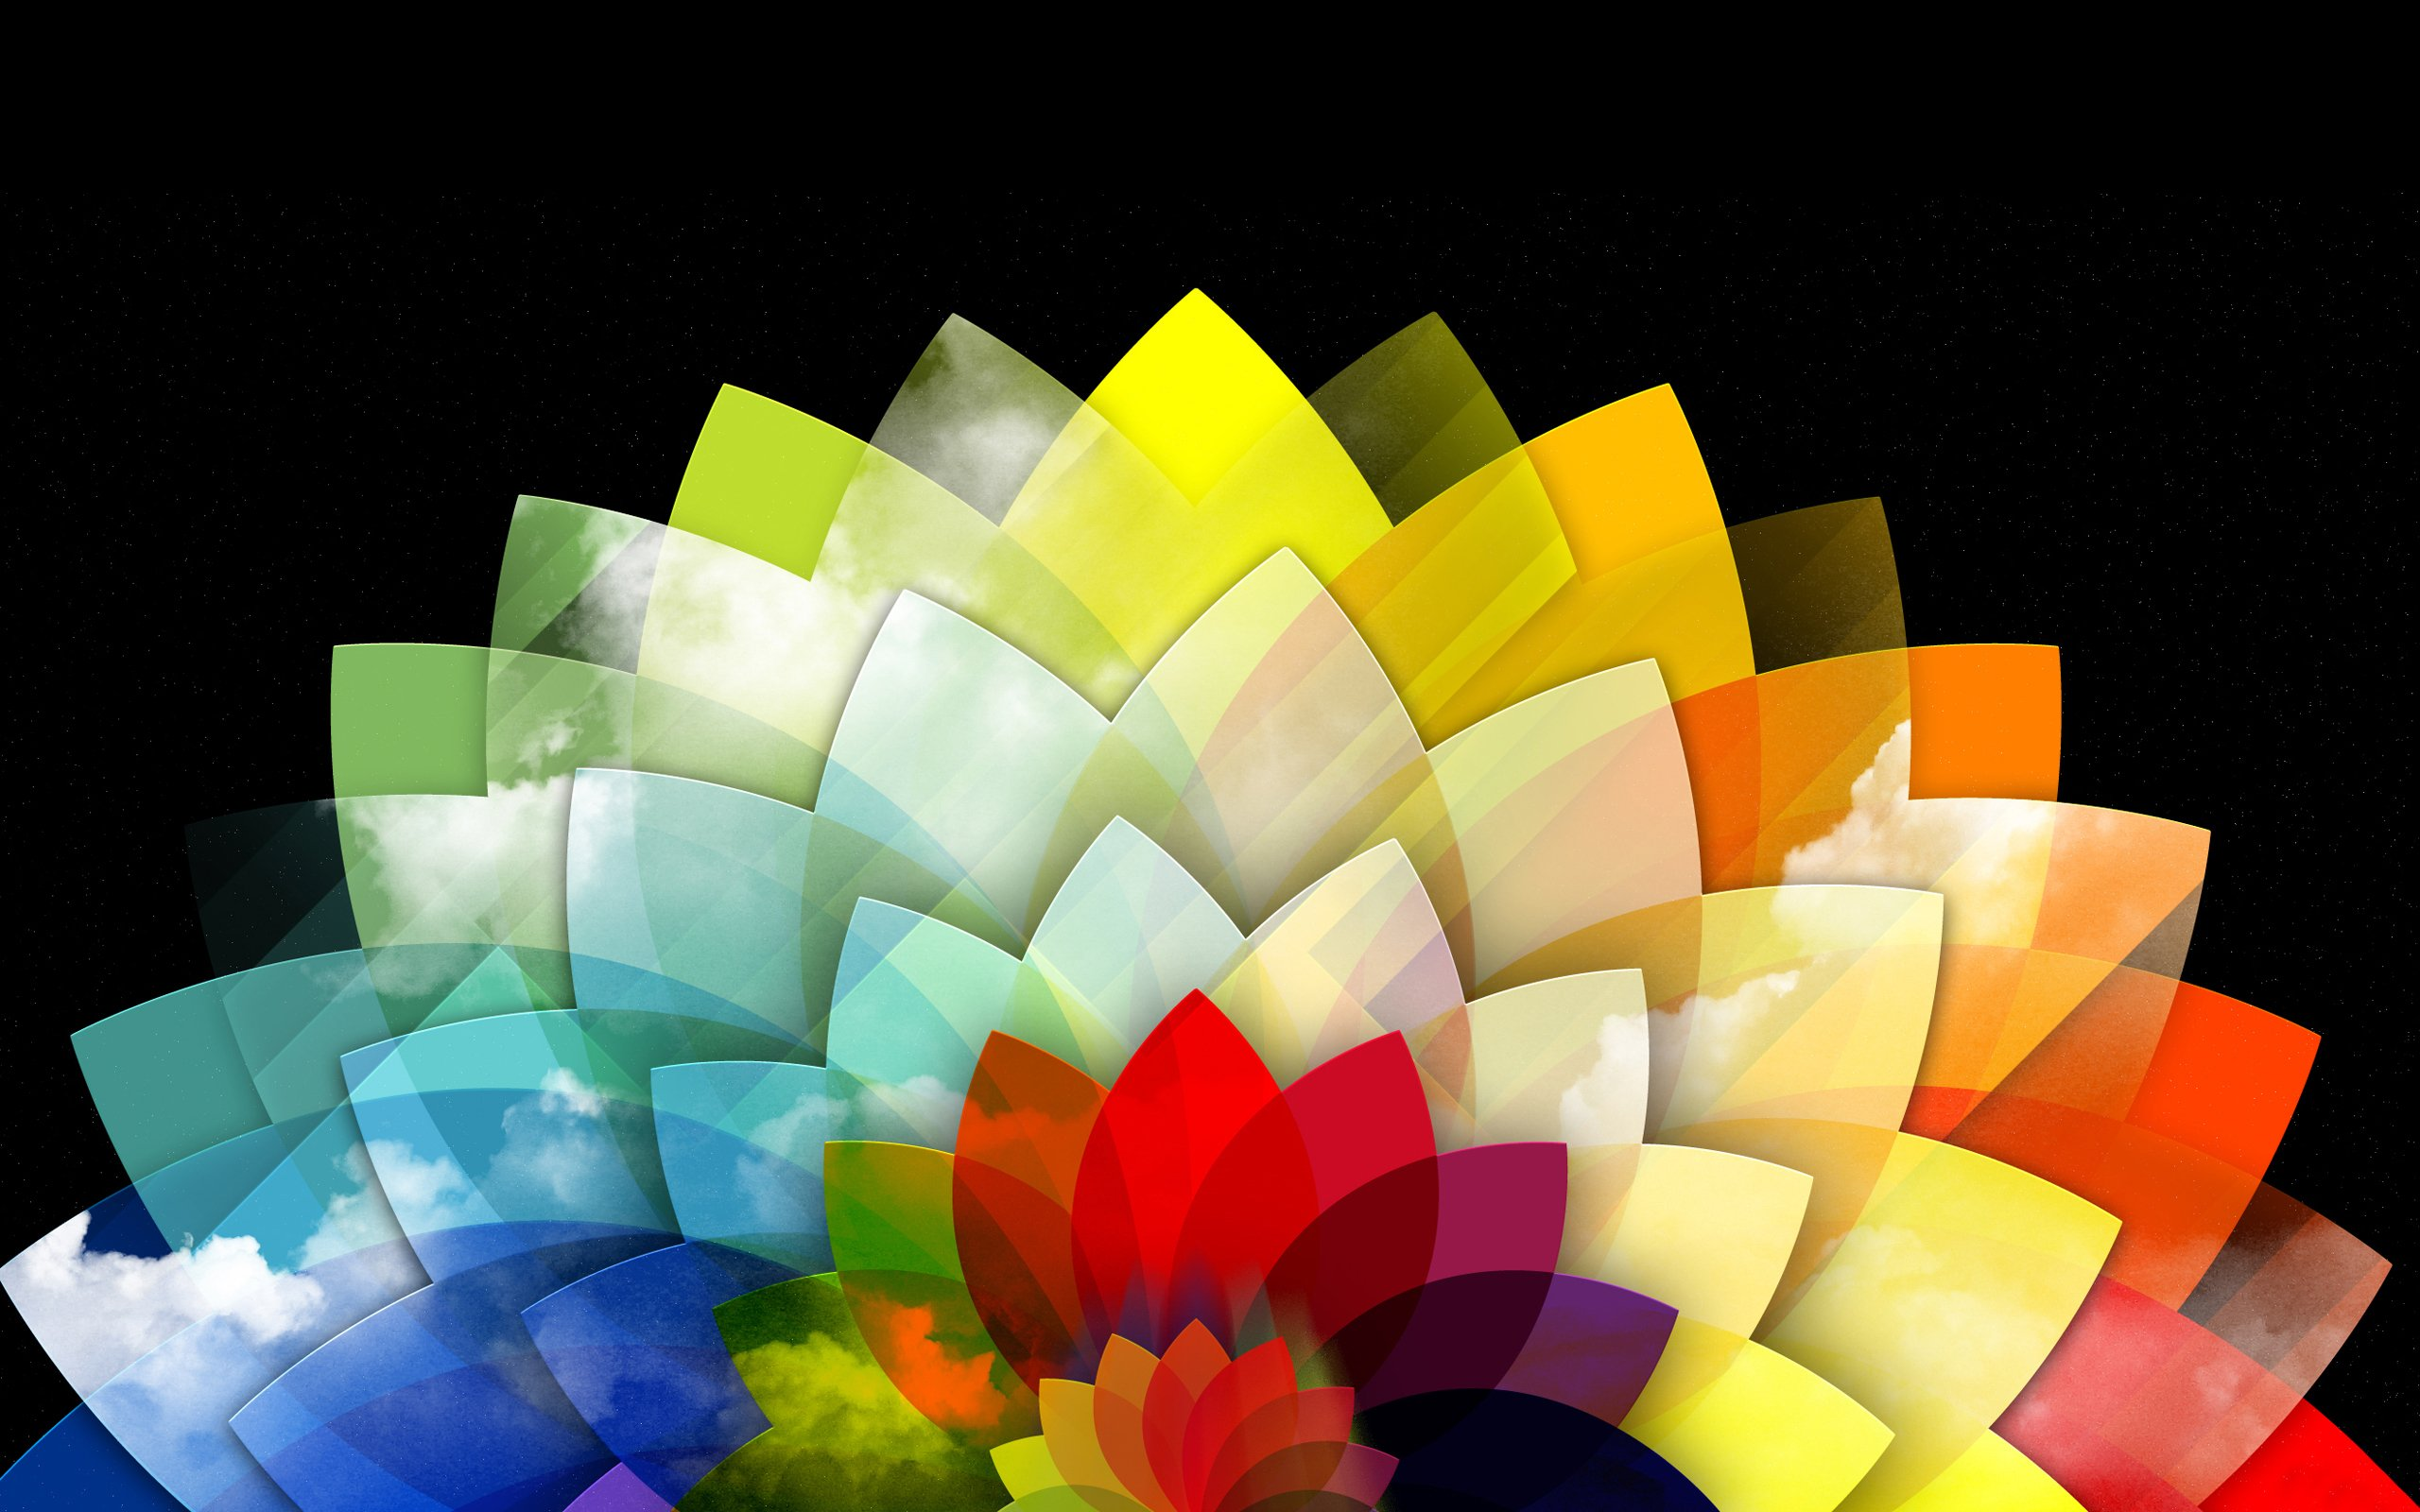 110 Super High Resolution Abstract Wallpapers For Your Mobile Devices